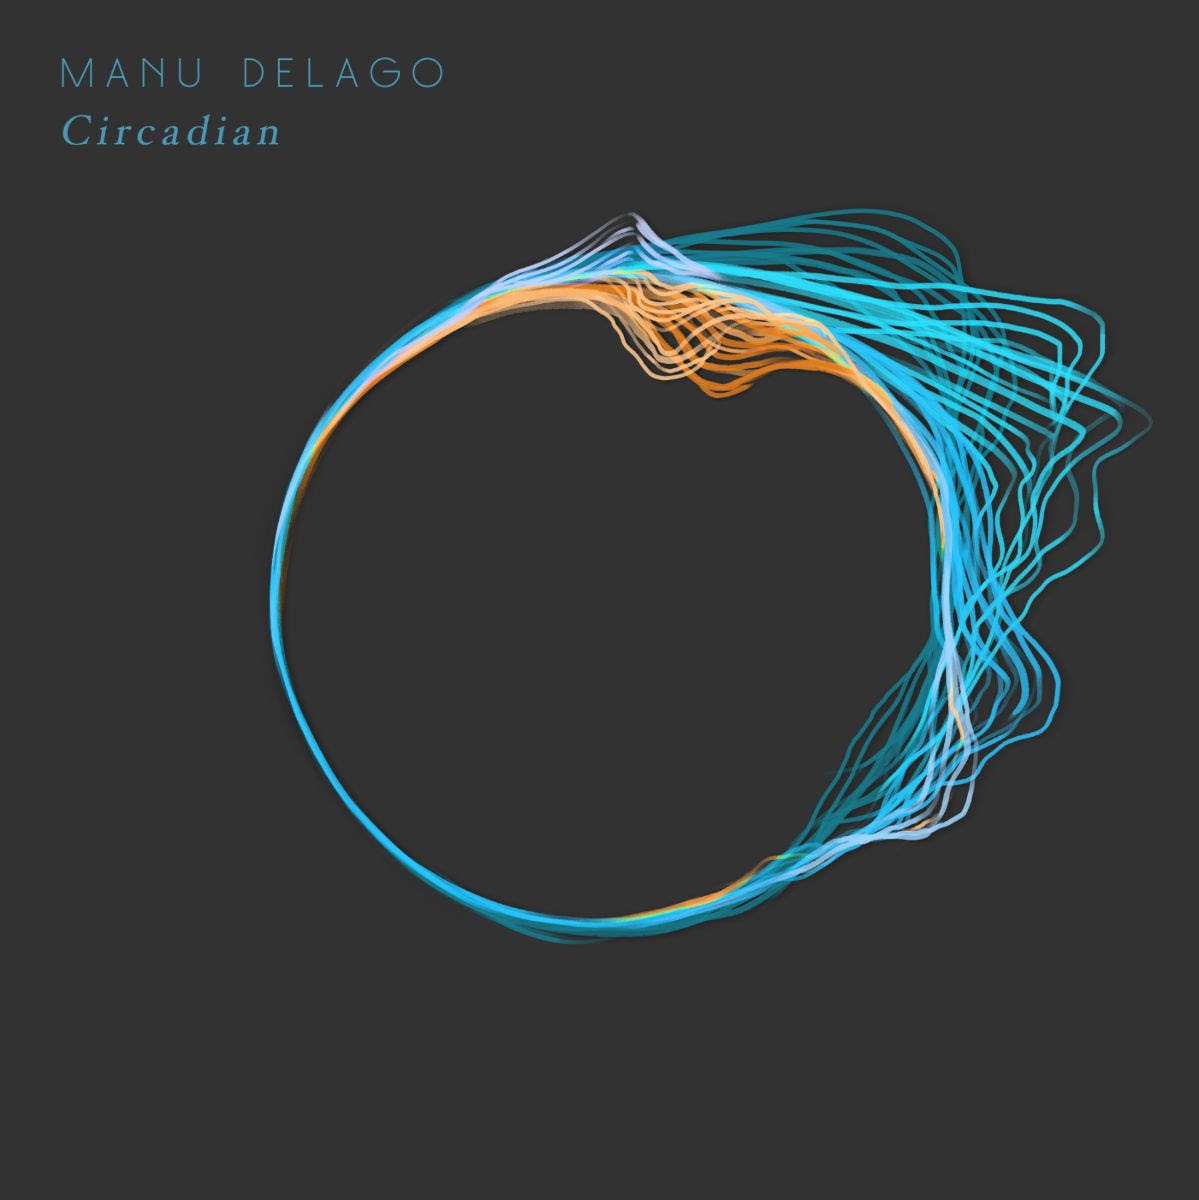 """""""Zeitgeber"""" by Manu Delago, is Northern Transmissions' 'Song of the Day'"""